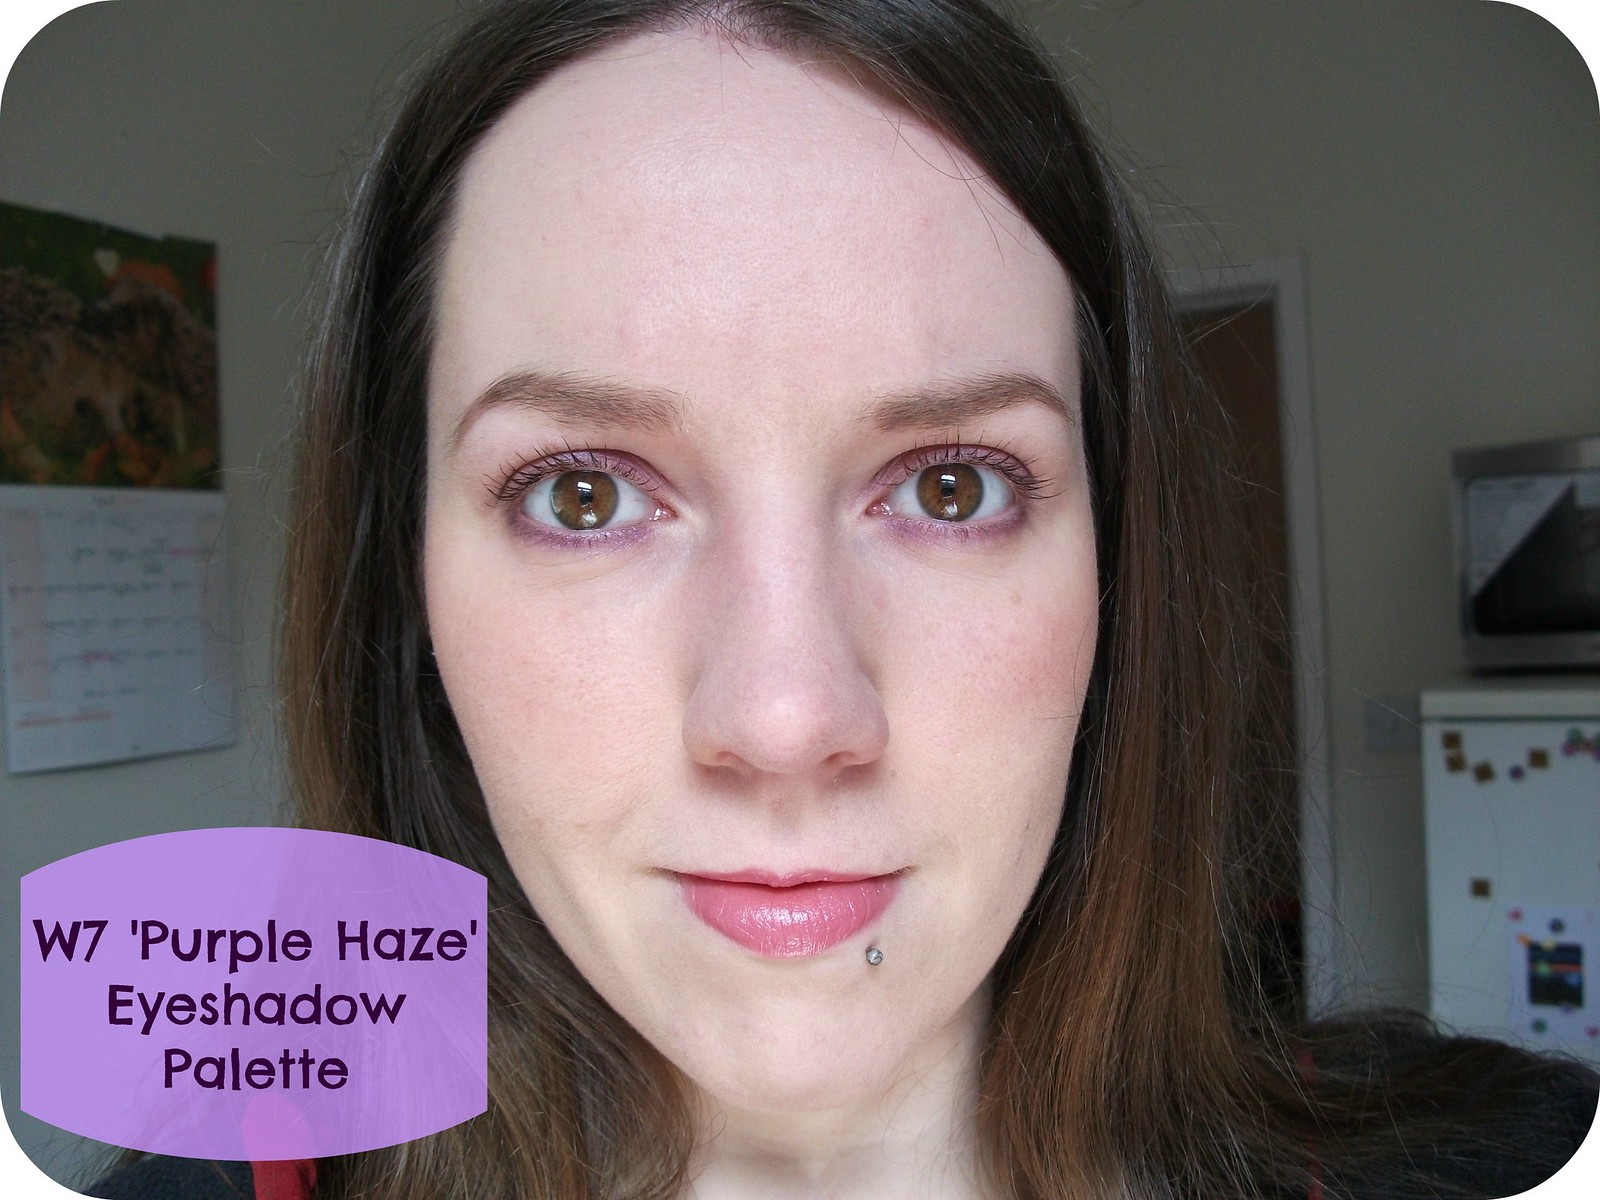 FOTD W7 Purple Haze